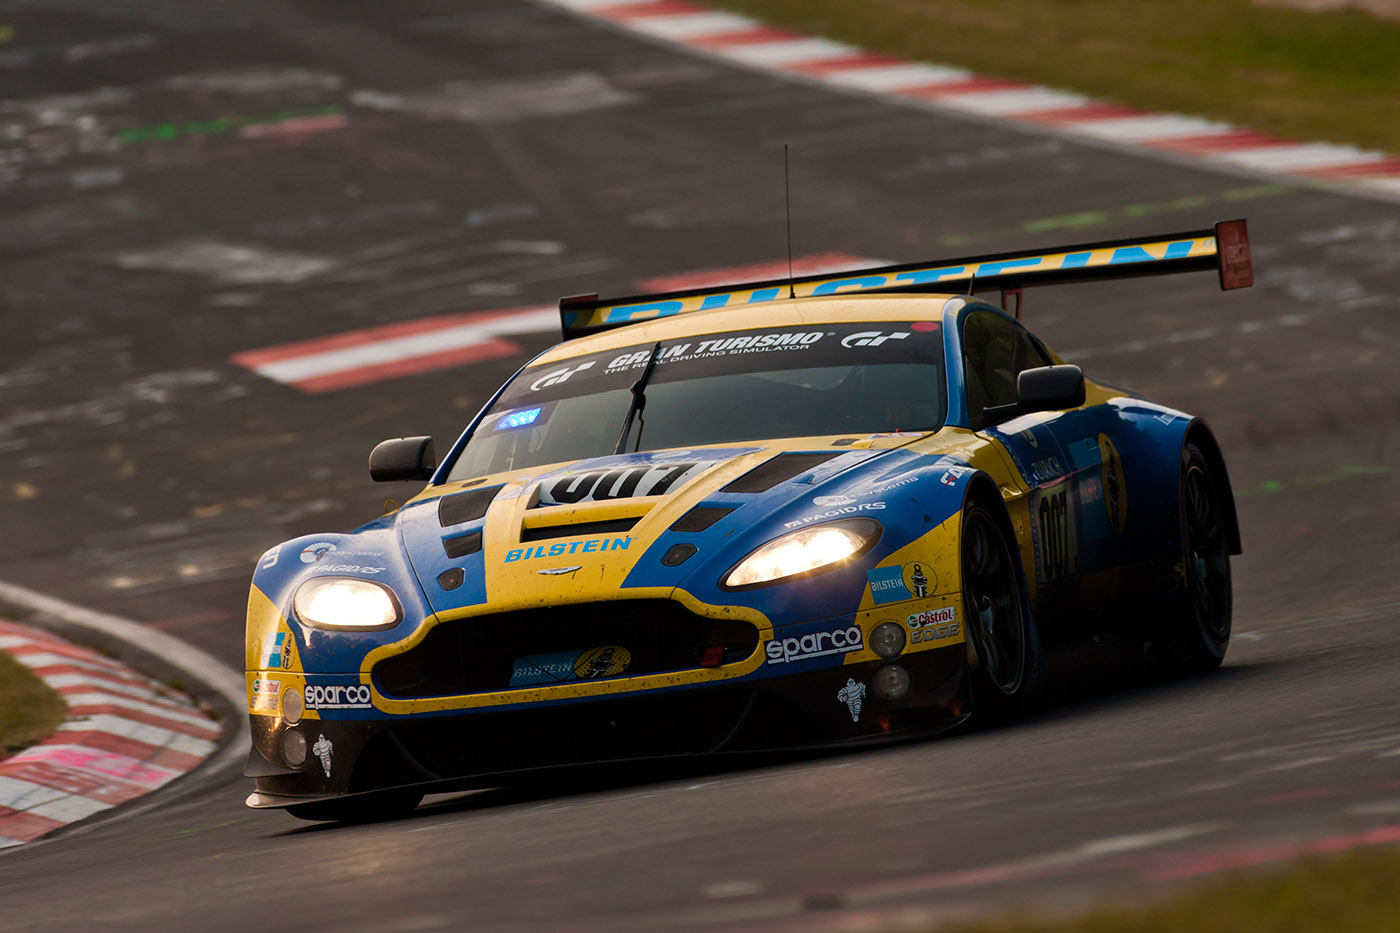 Aston Martin Racing Cars Confirmed For Project Cars Team Vvv